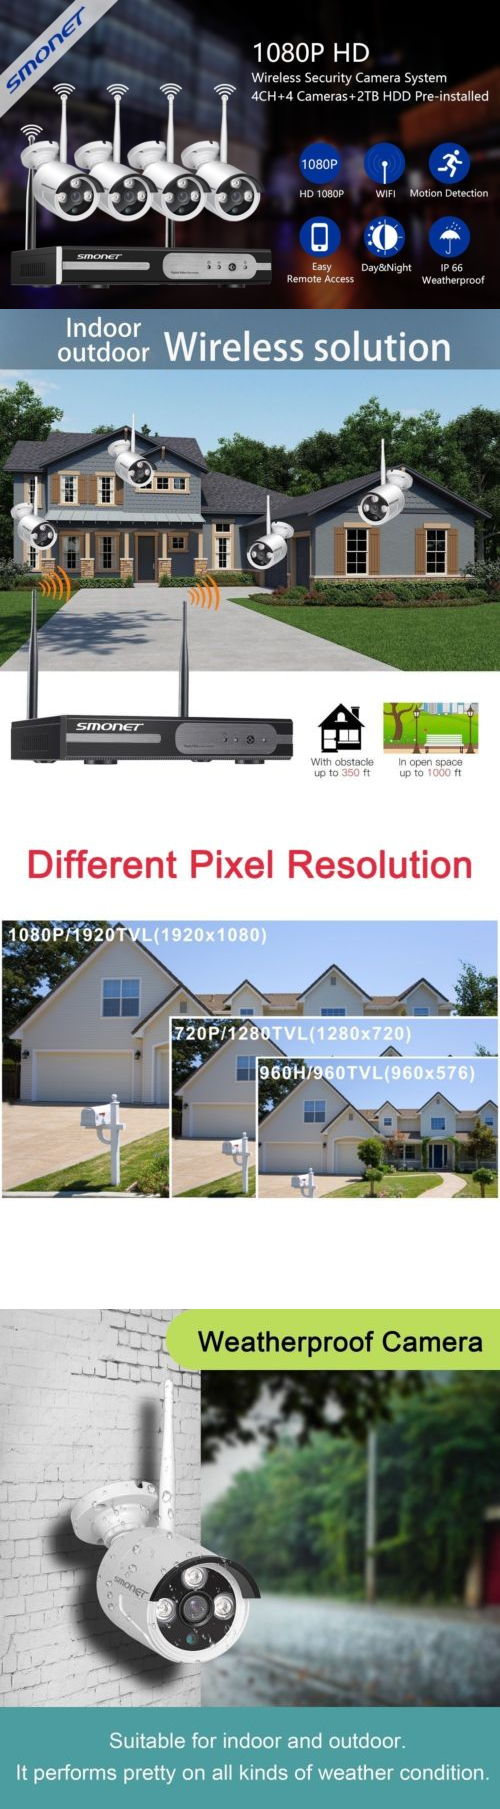 hight resolution of security cameras outdoor wireless clear picture 4 1080p security bullet ip camera system 2tb nvr